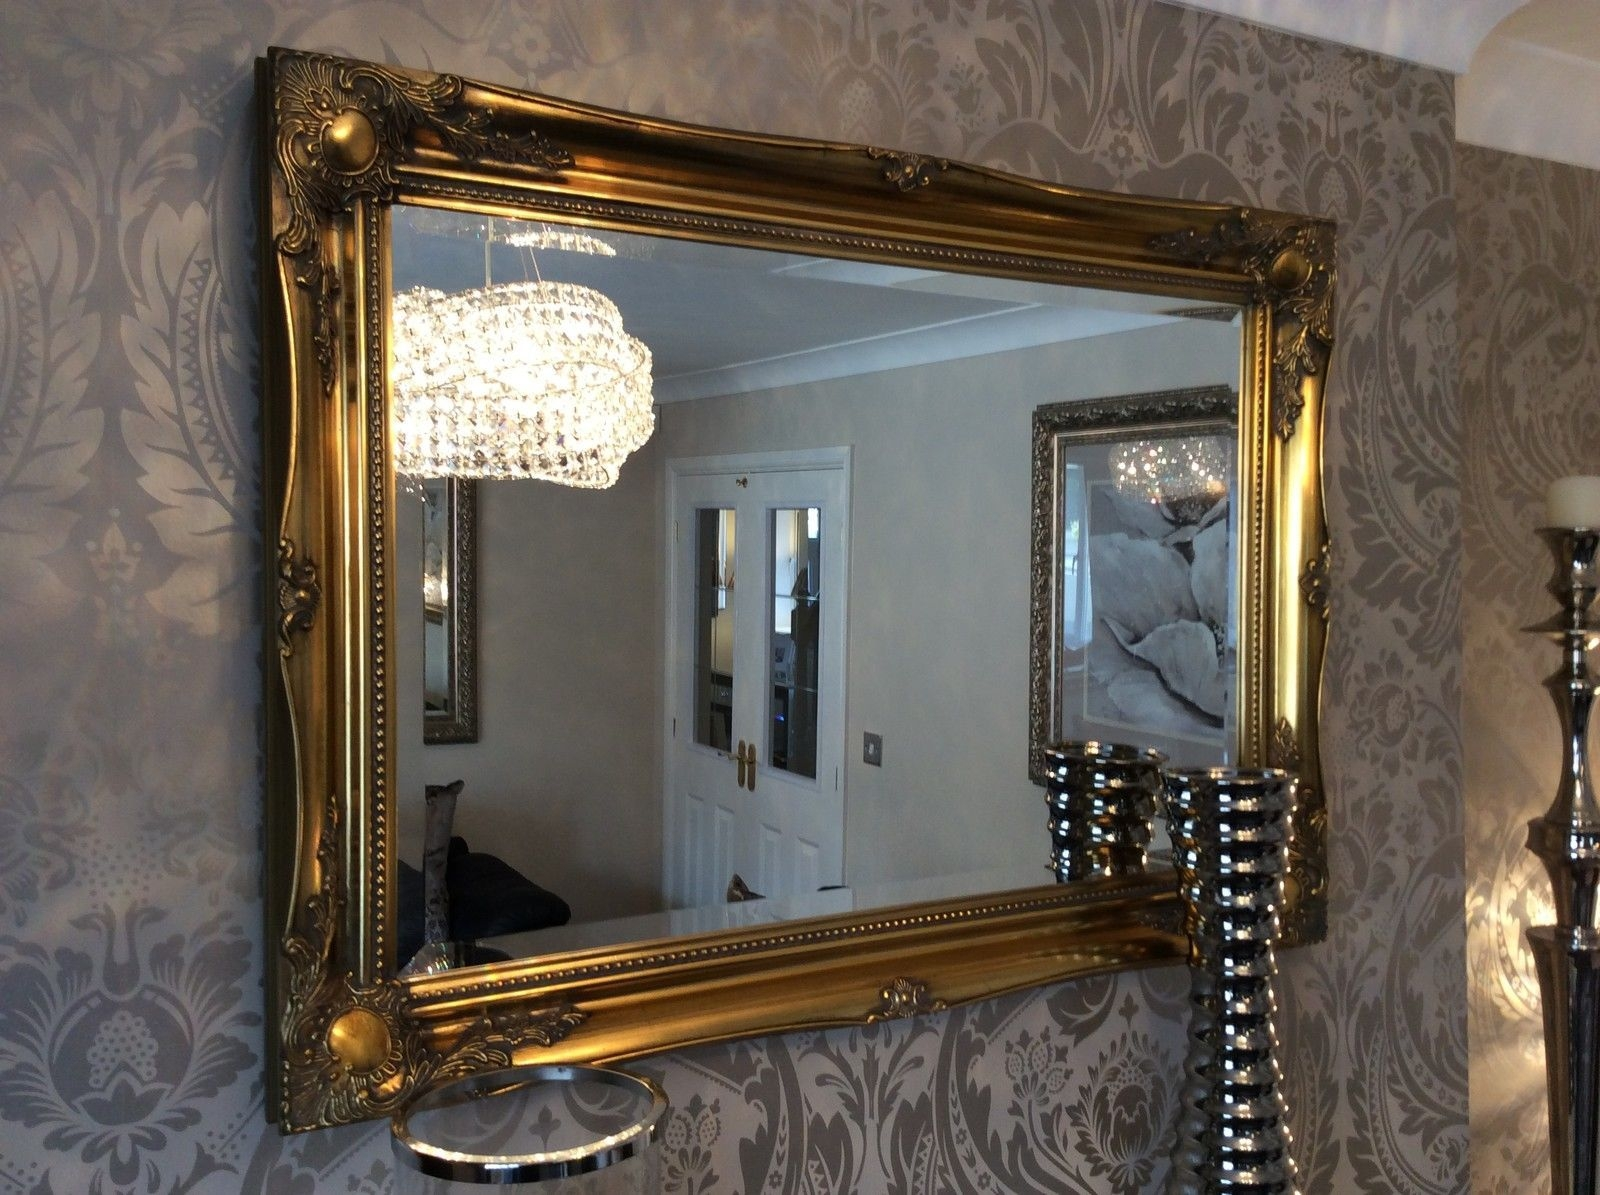 Classic Impression On Antique Wall Mirrors Vwho With Shabby Chic Gold Mirror (Image 5 of 15)